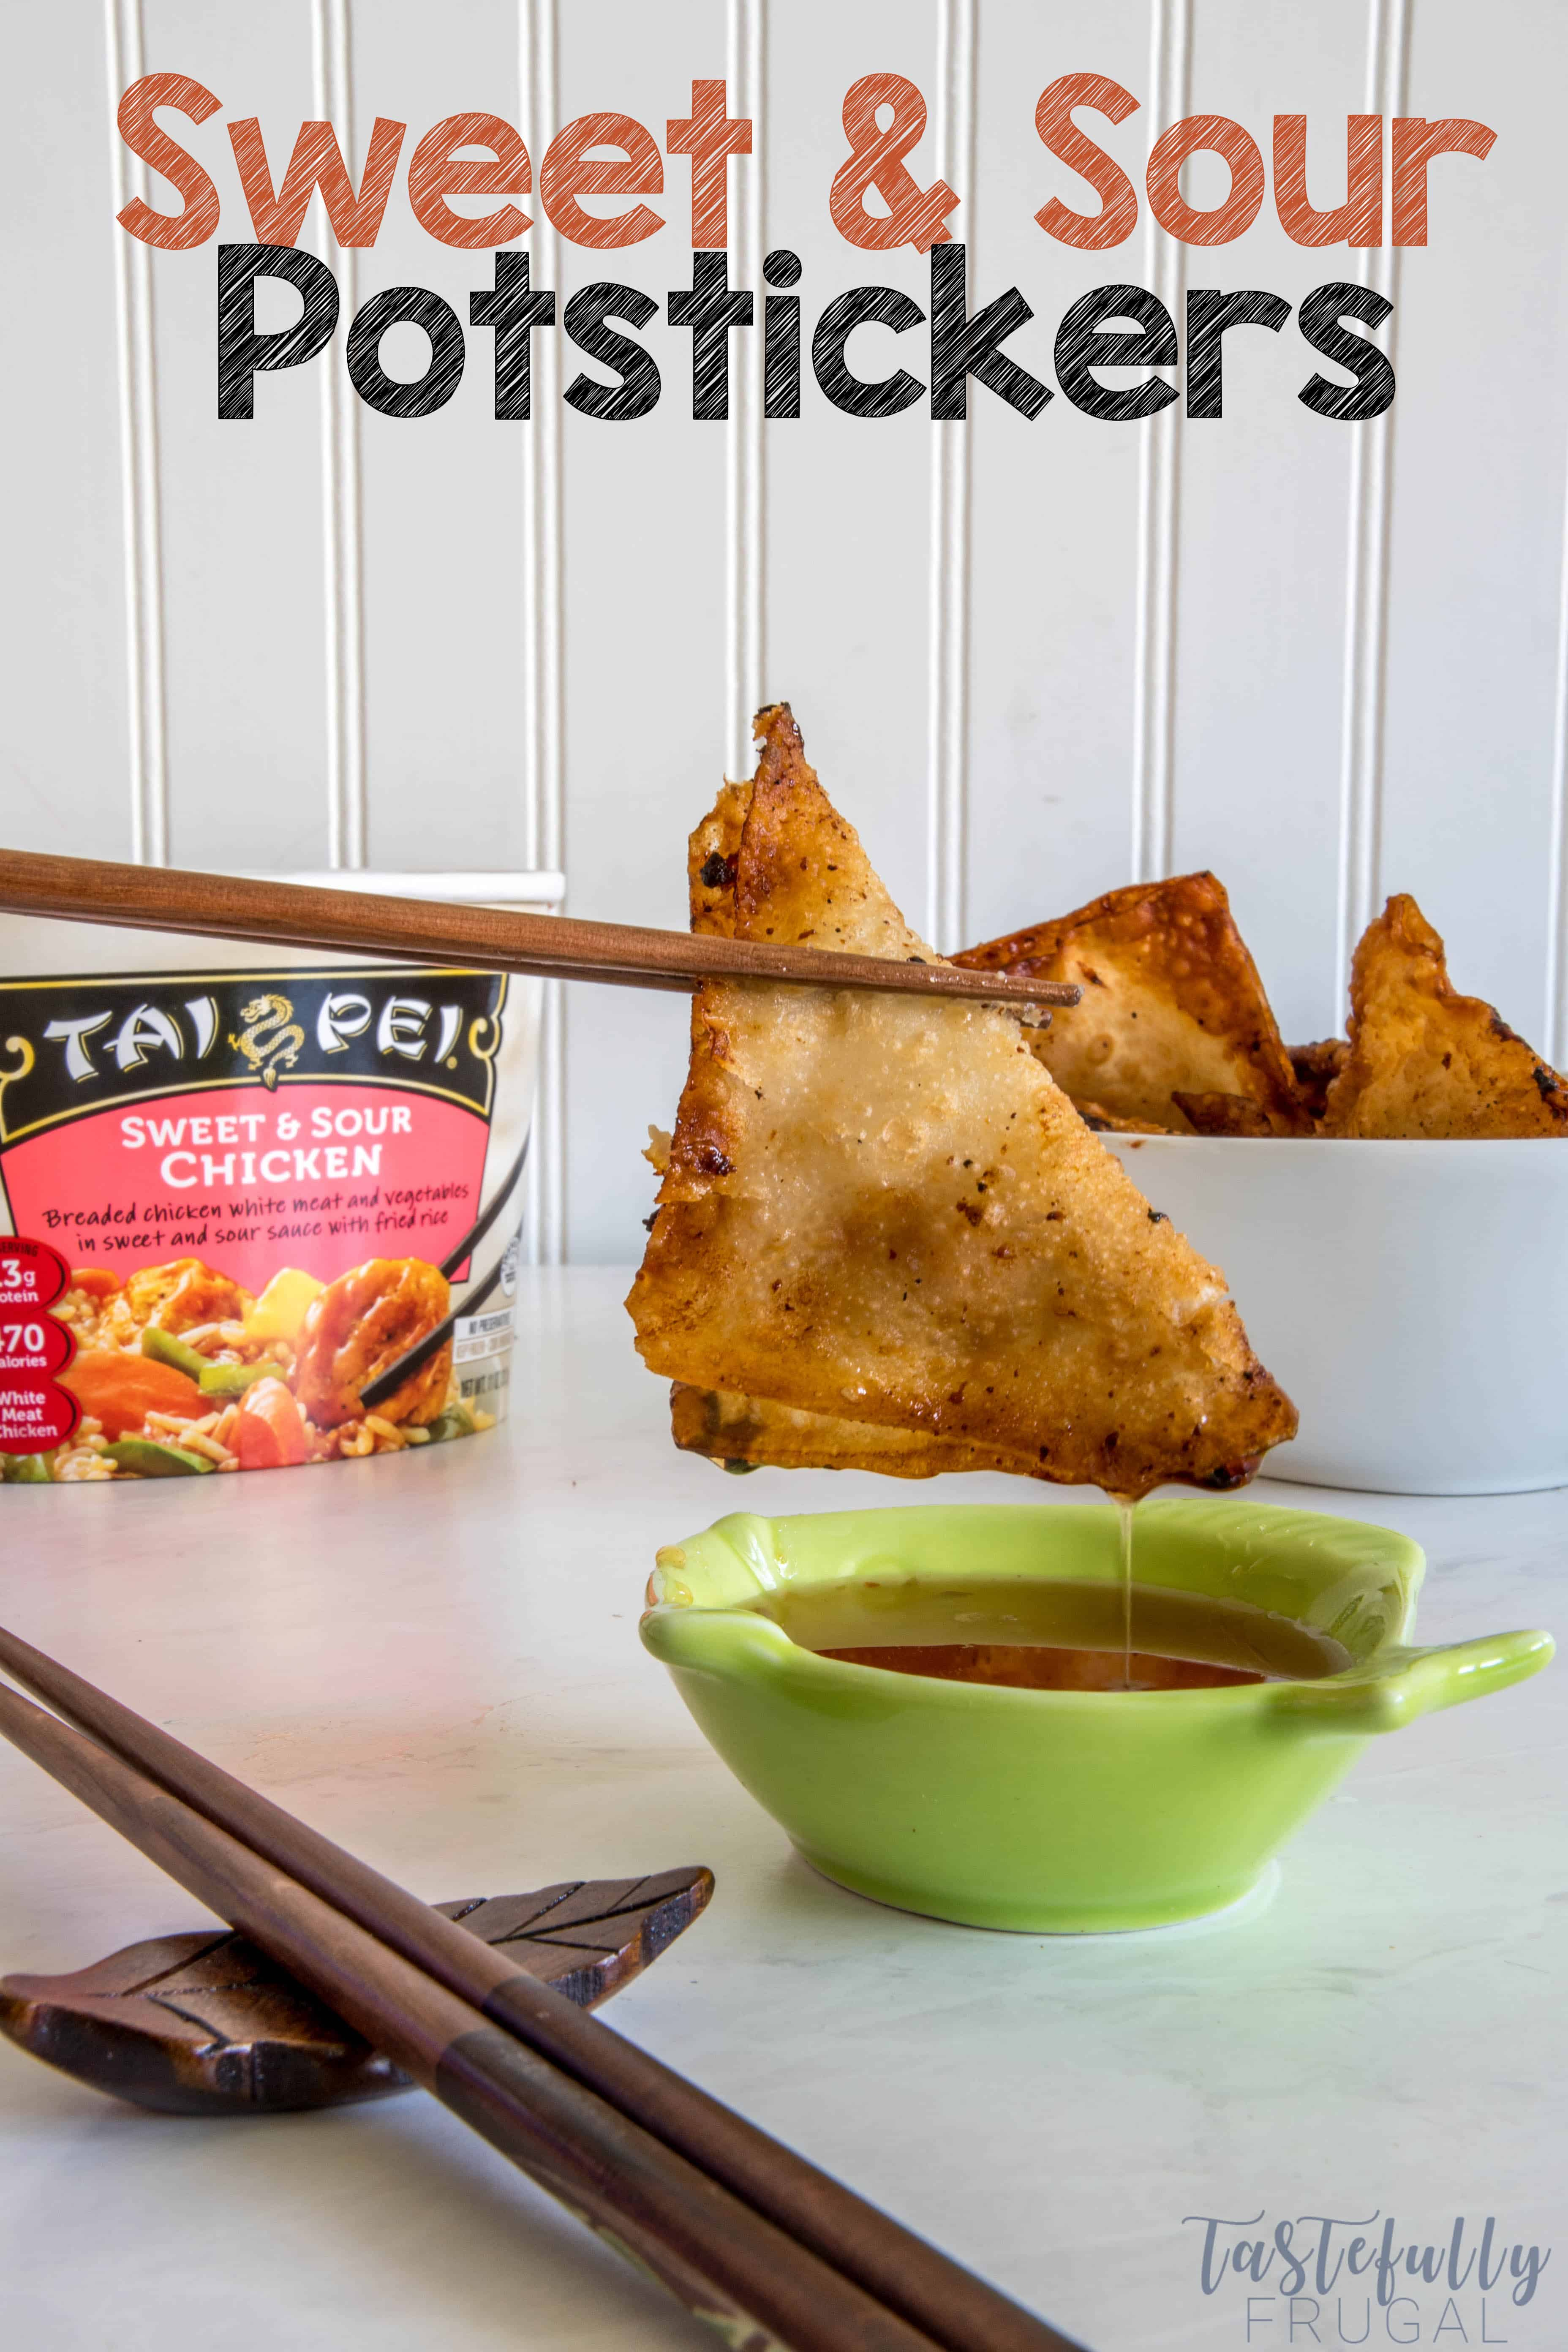 This easy potsticker recipe paired with Tai Pei Foods makes a quick, easy and healthy dinner! #ad #TaiPeiFood #TaiPeiAsianFoods #FrozenAsianFood